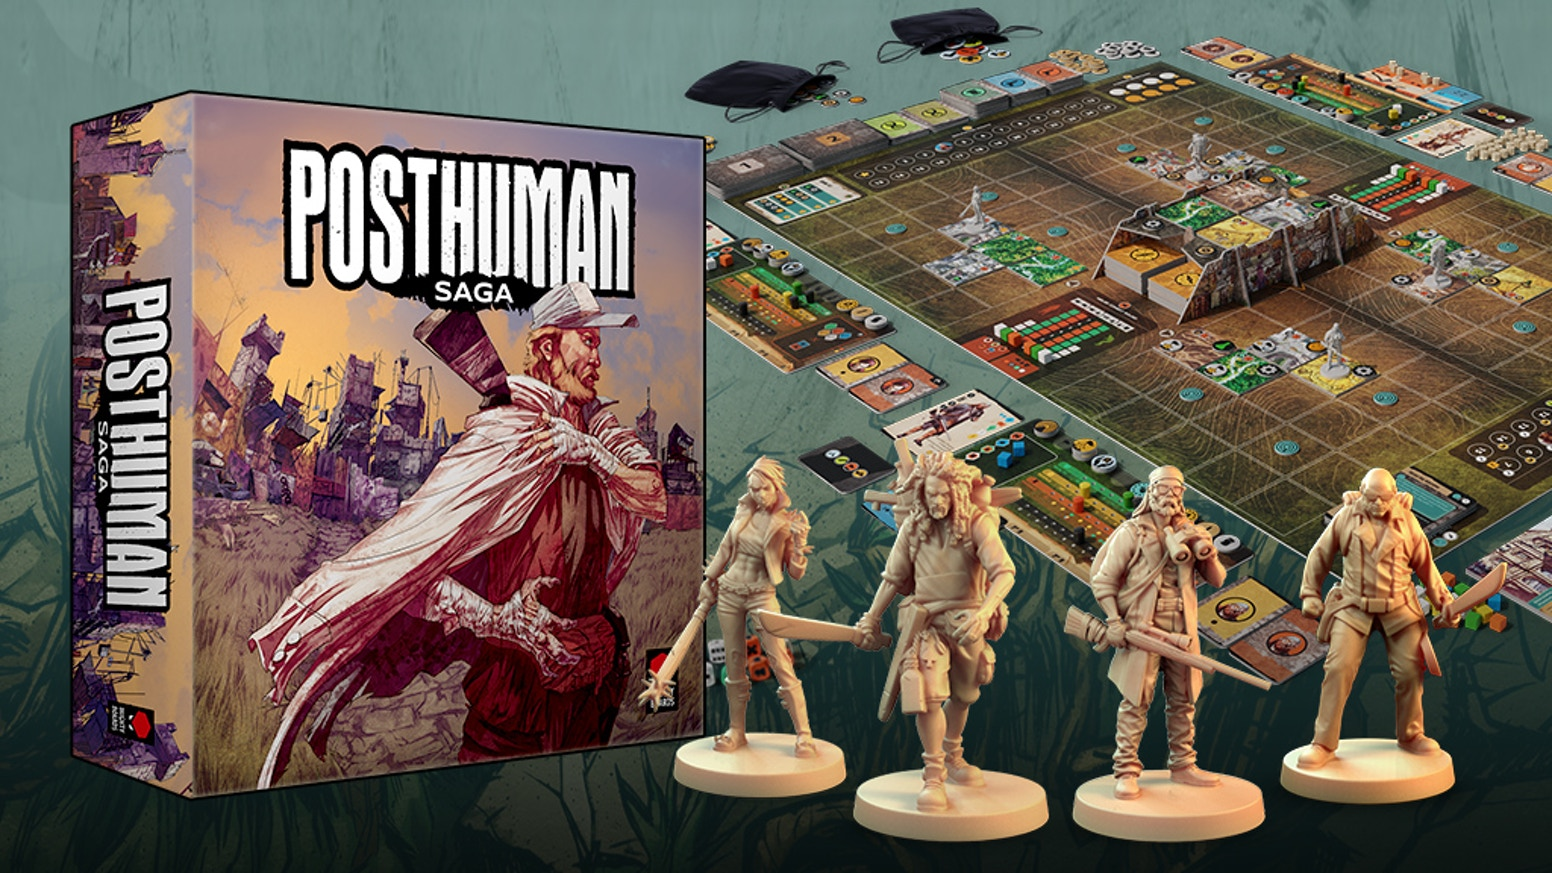 A strategic survival board game in the mutant world of Posthuman